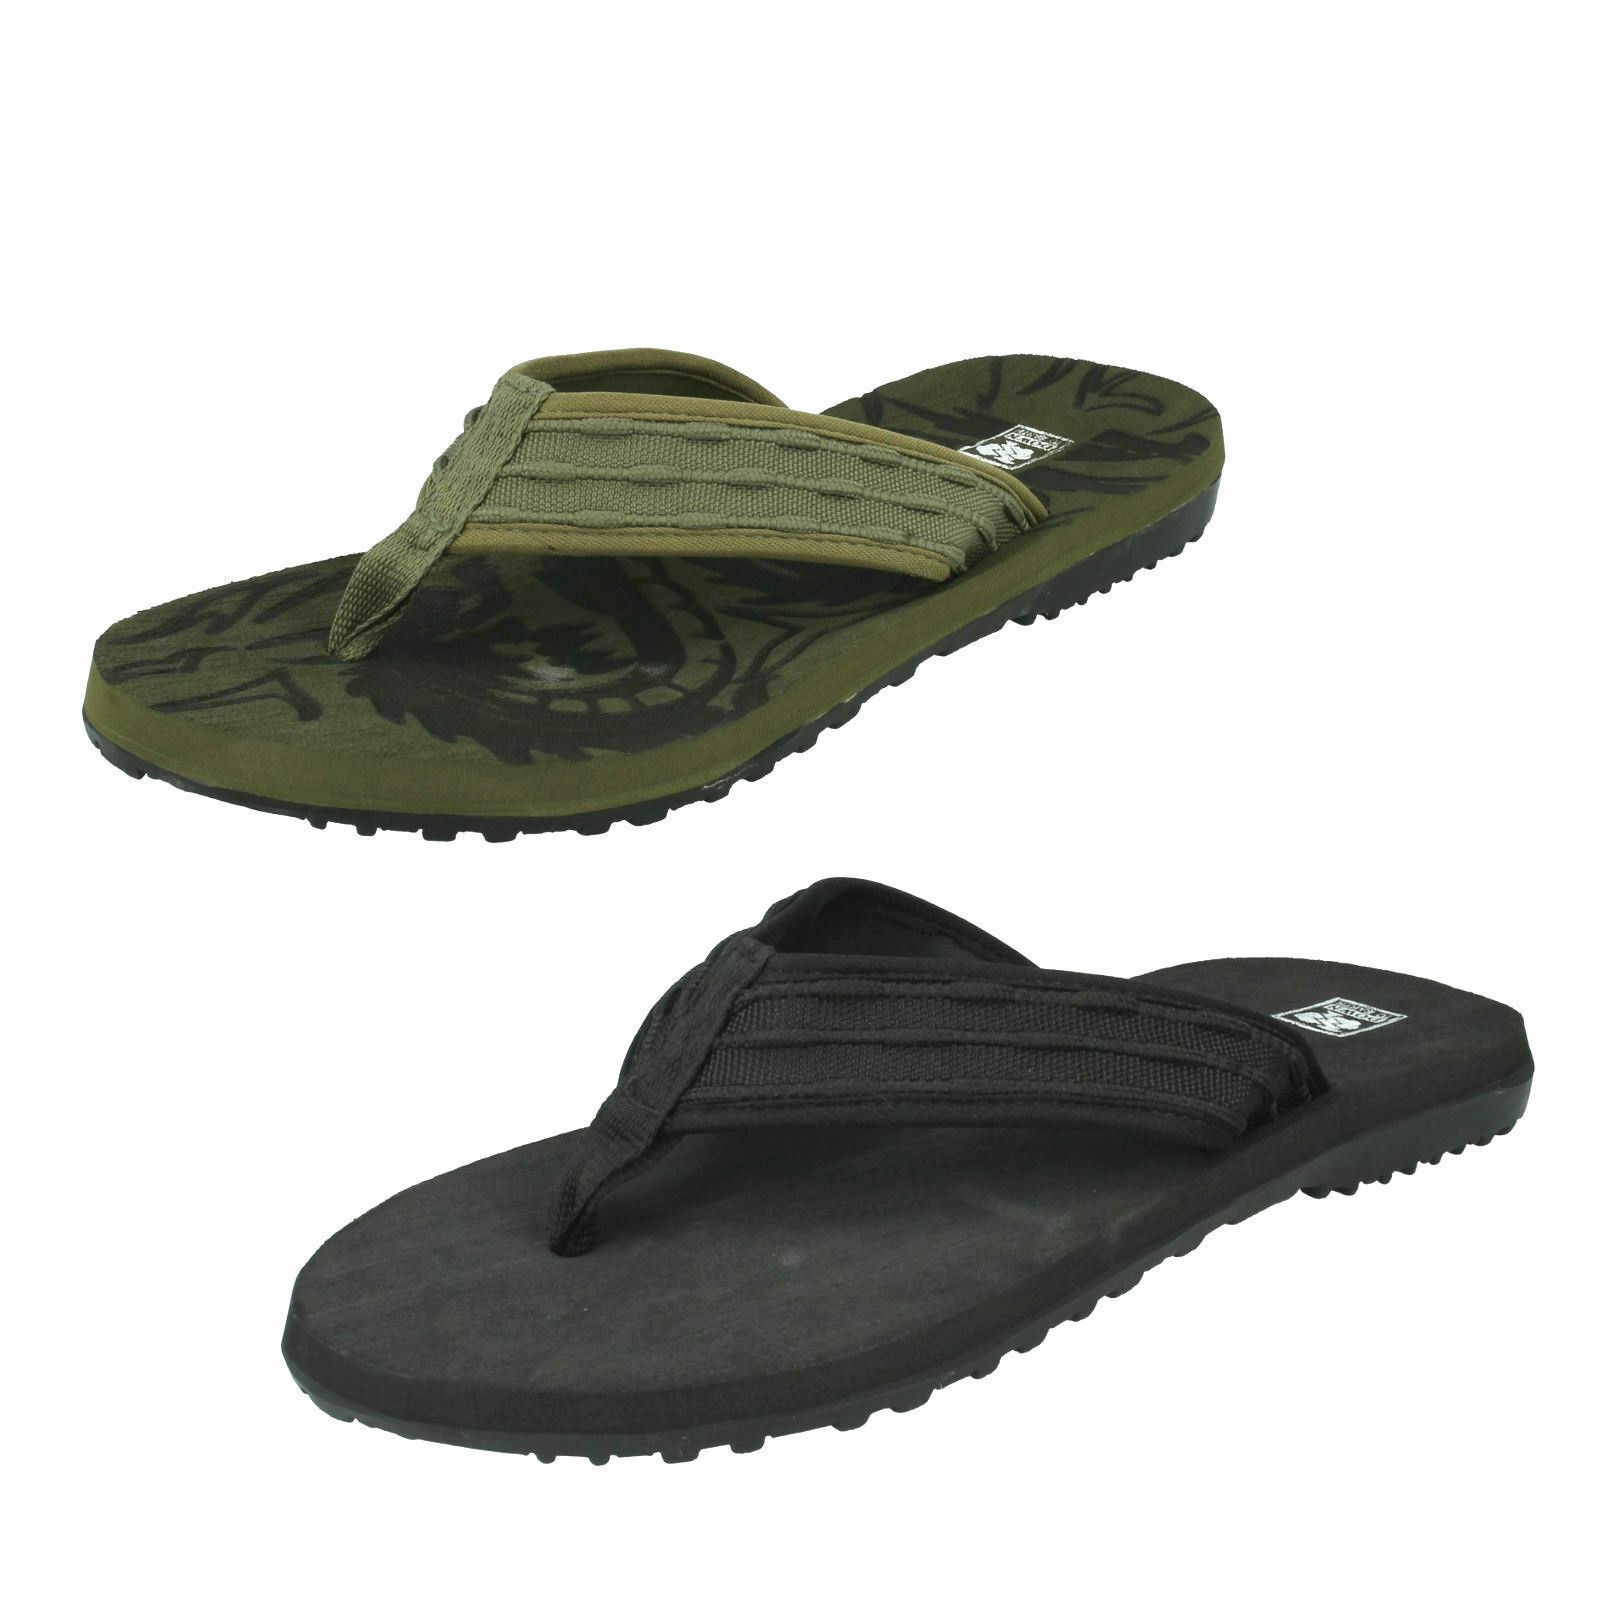 Hombre TEXTILE SLIP ON SUMMER TO FLIP FLOPS DOWN TO SUMMER EARTH A0043 271b1b